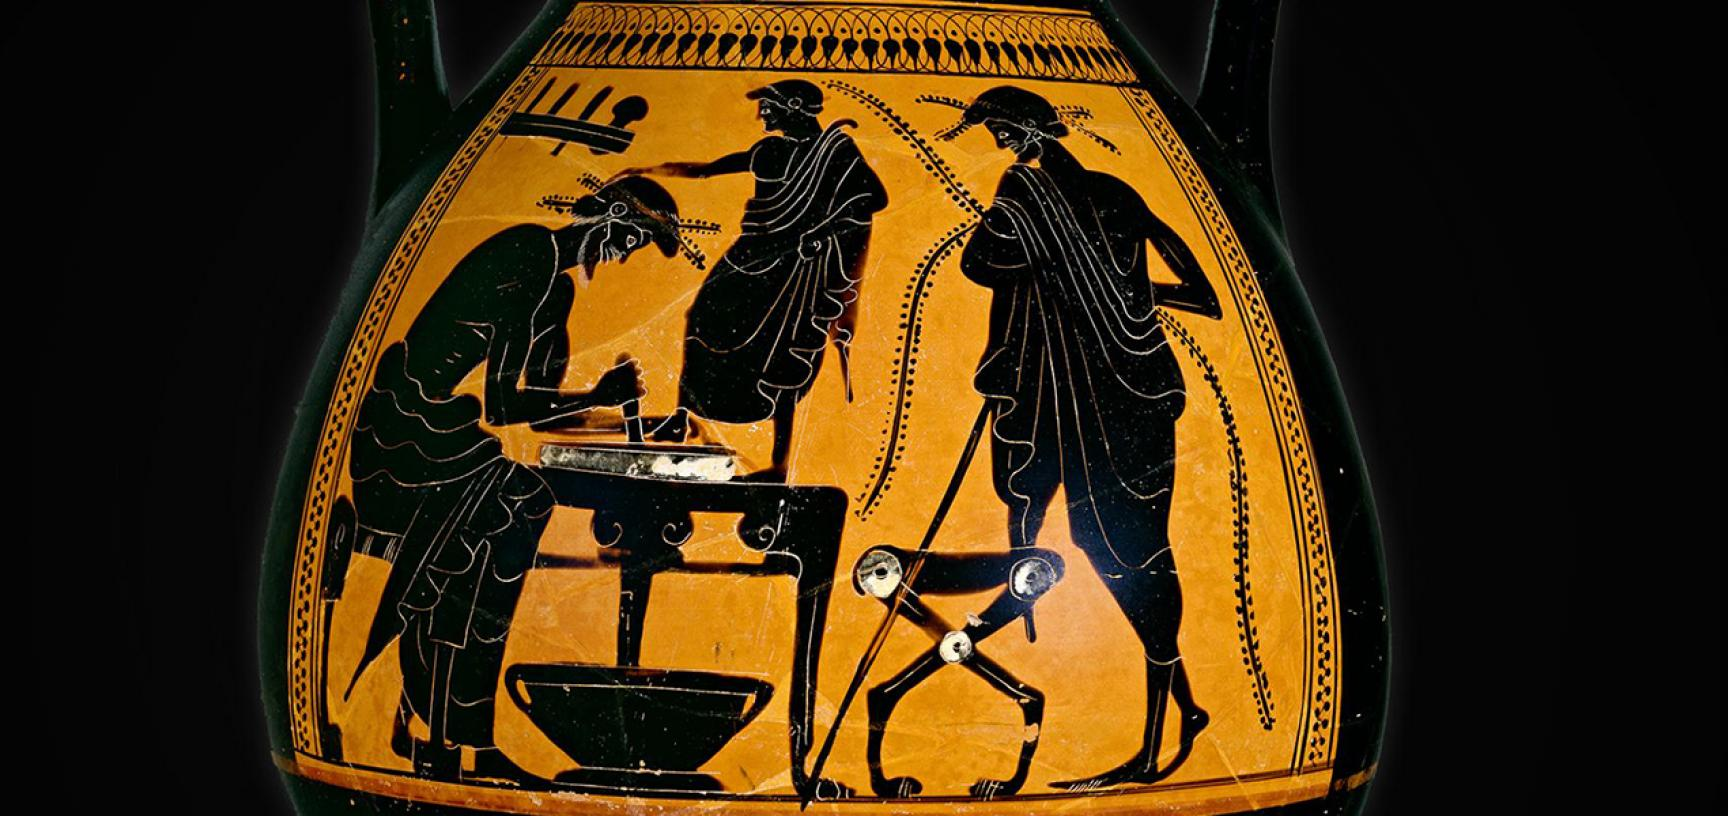 Shoemaker Vase, The Eucharides Painter, c. 500BC